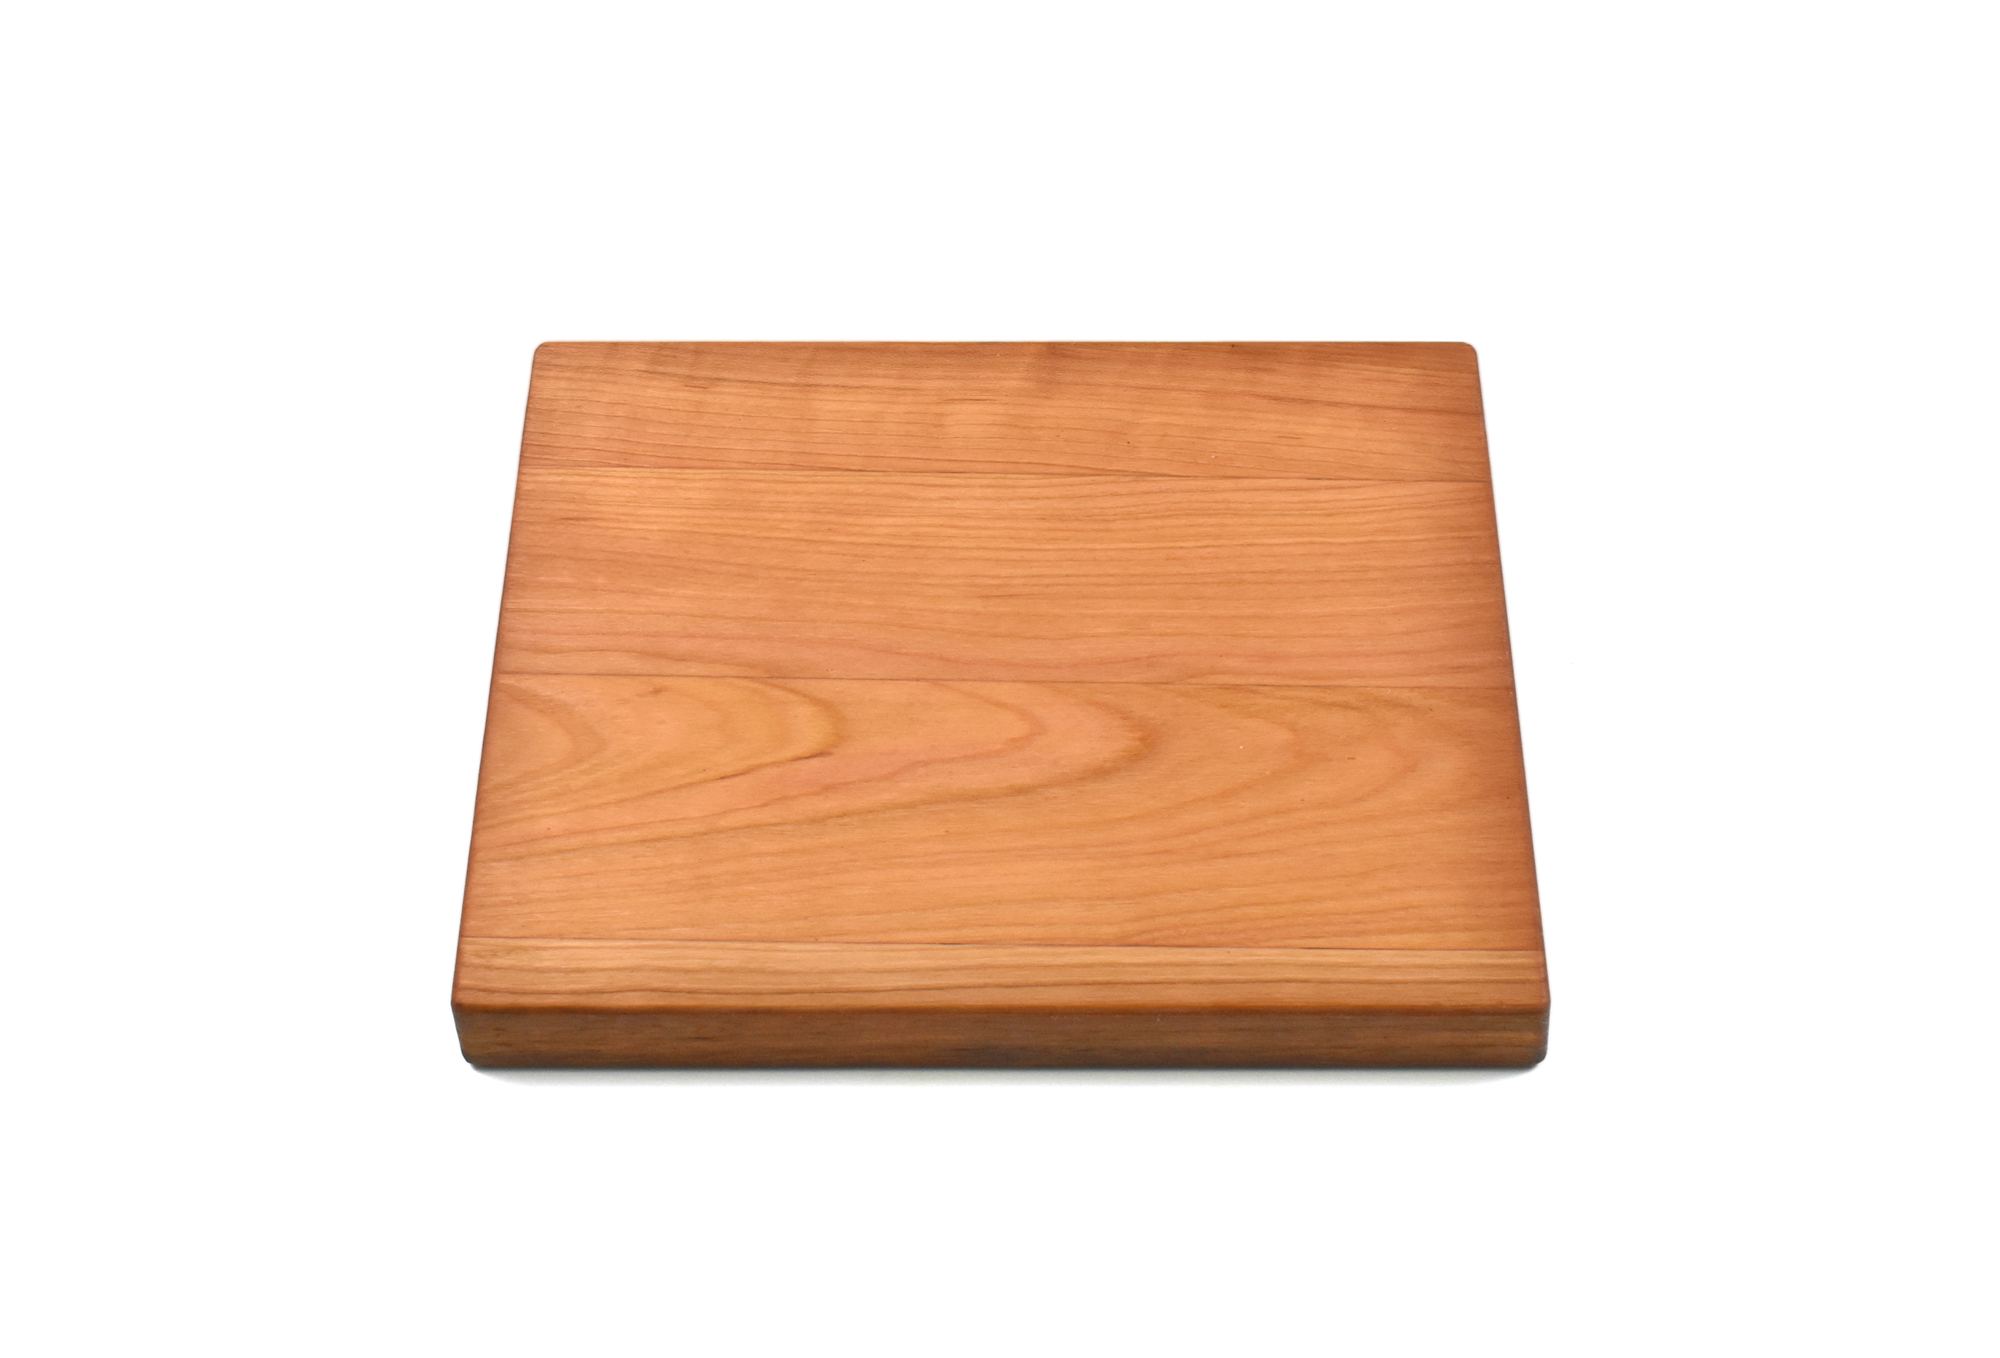 Mini board with rounded corners & edges